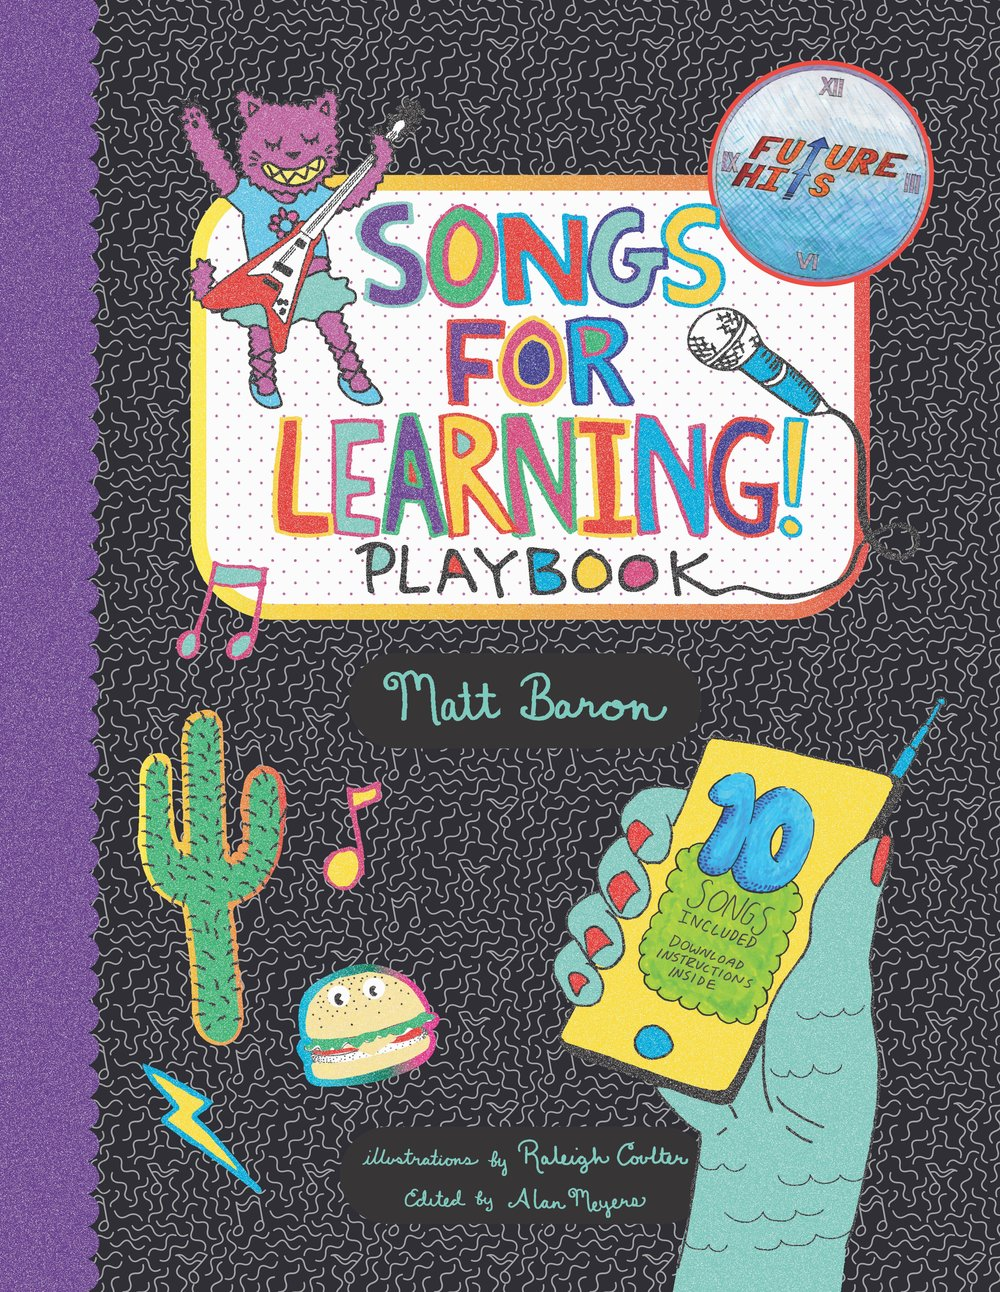 Songs for Learning Cover Final04-2018lr.jpg